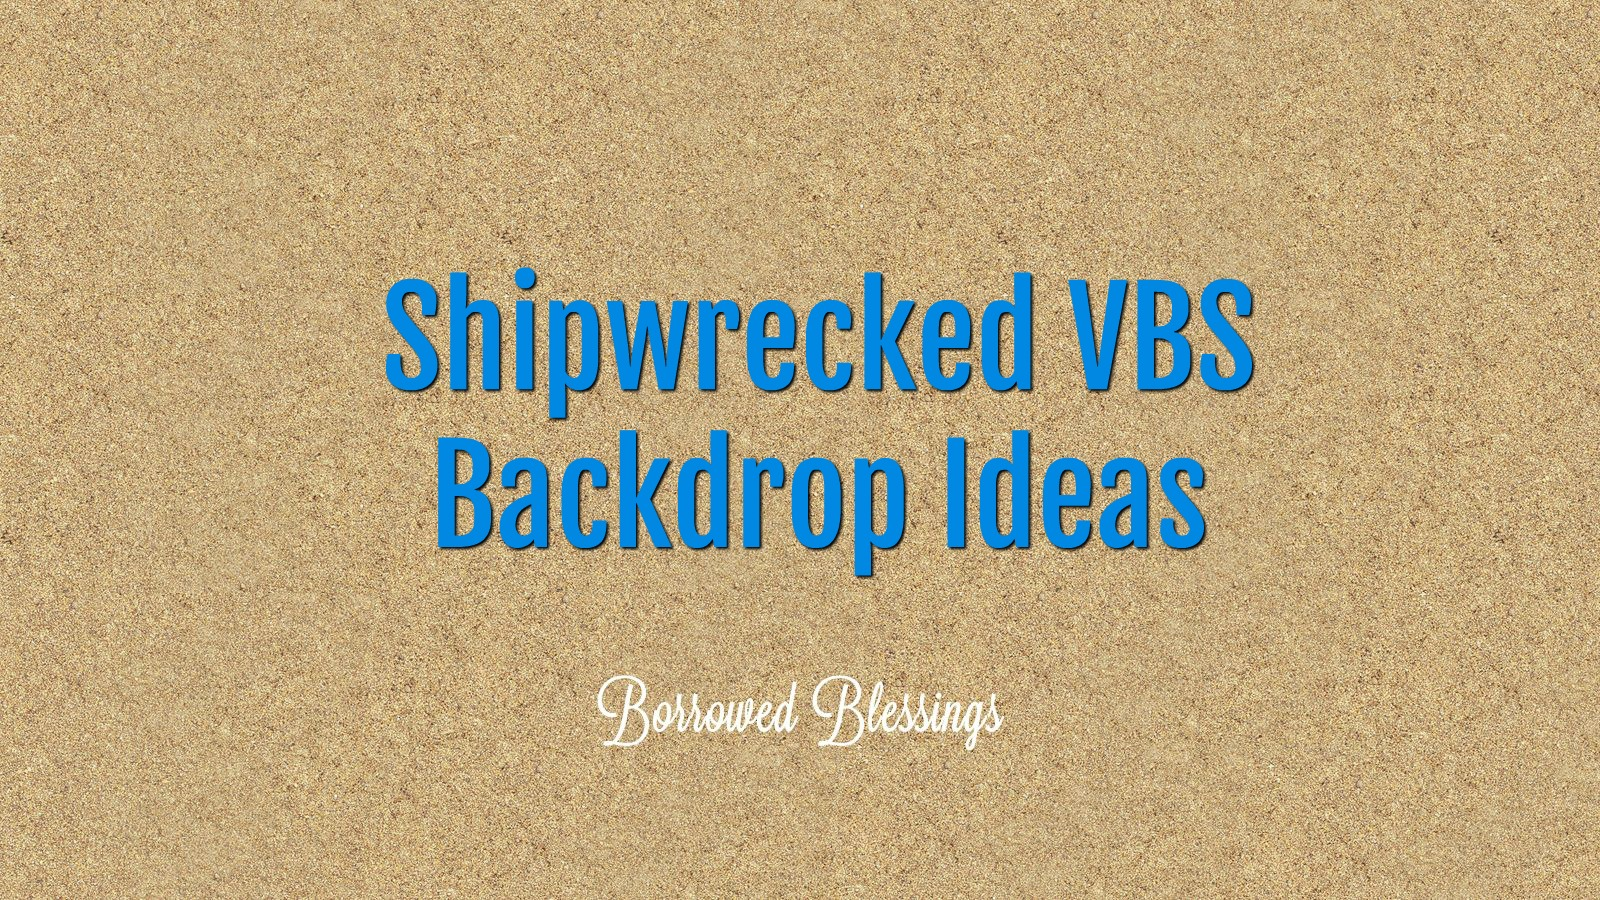 Shipwrecked VBS Backdrop Ideas - Borrowed BlessingsBorrowed Blessings